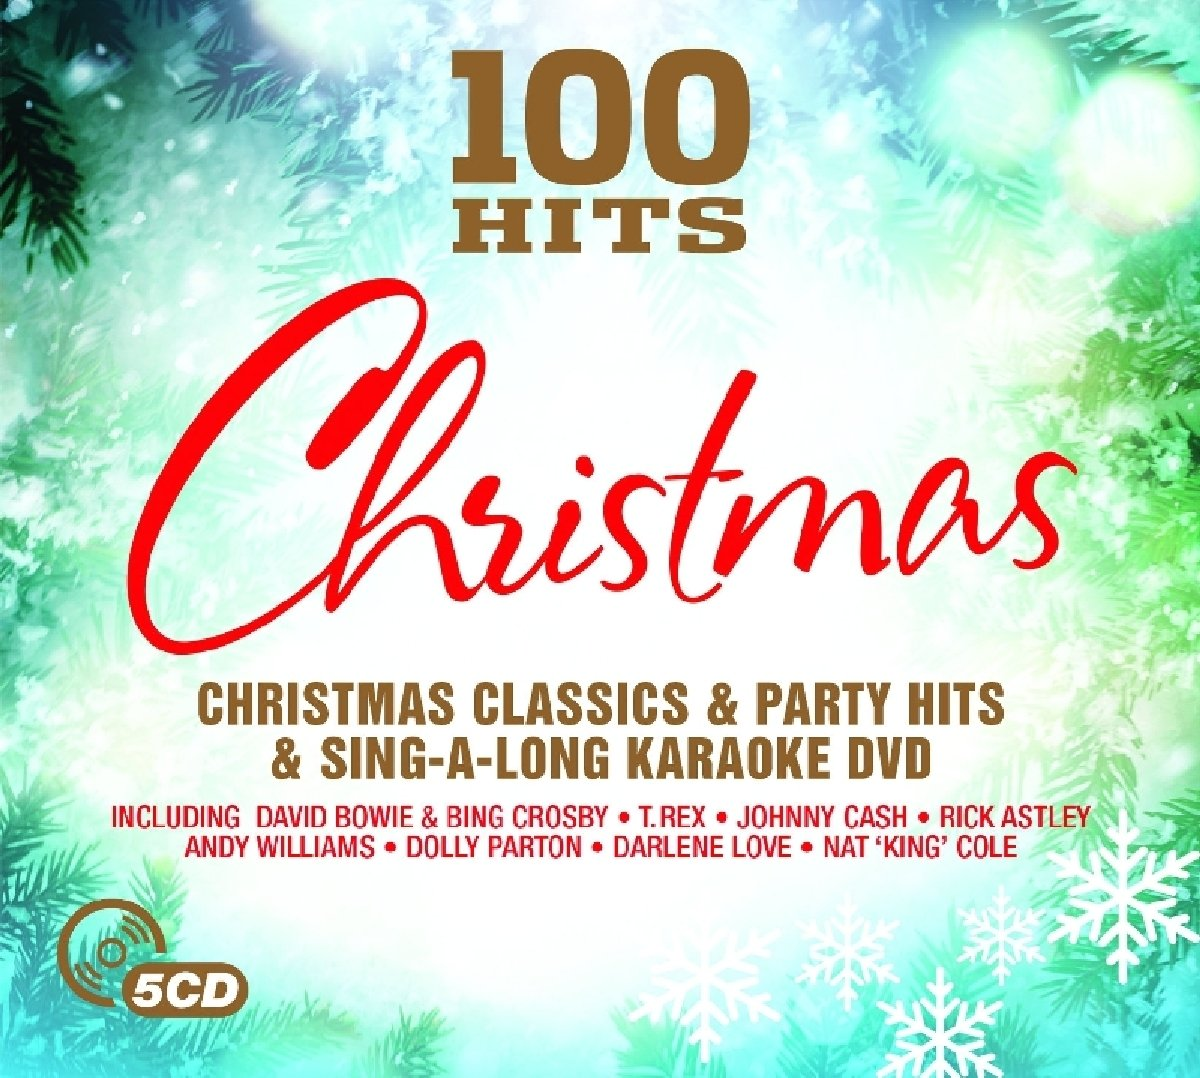 100 Hits - Christmas: Amazon.co.uk: Music